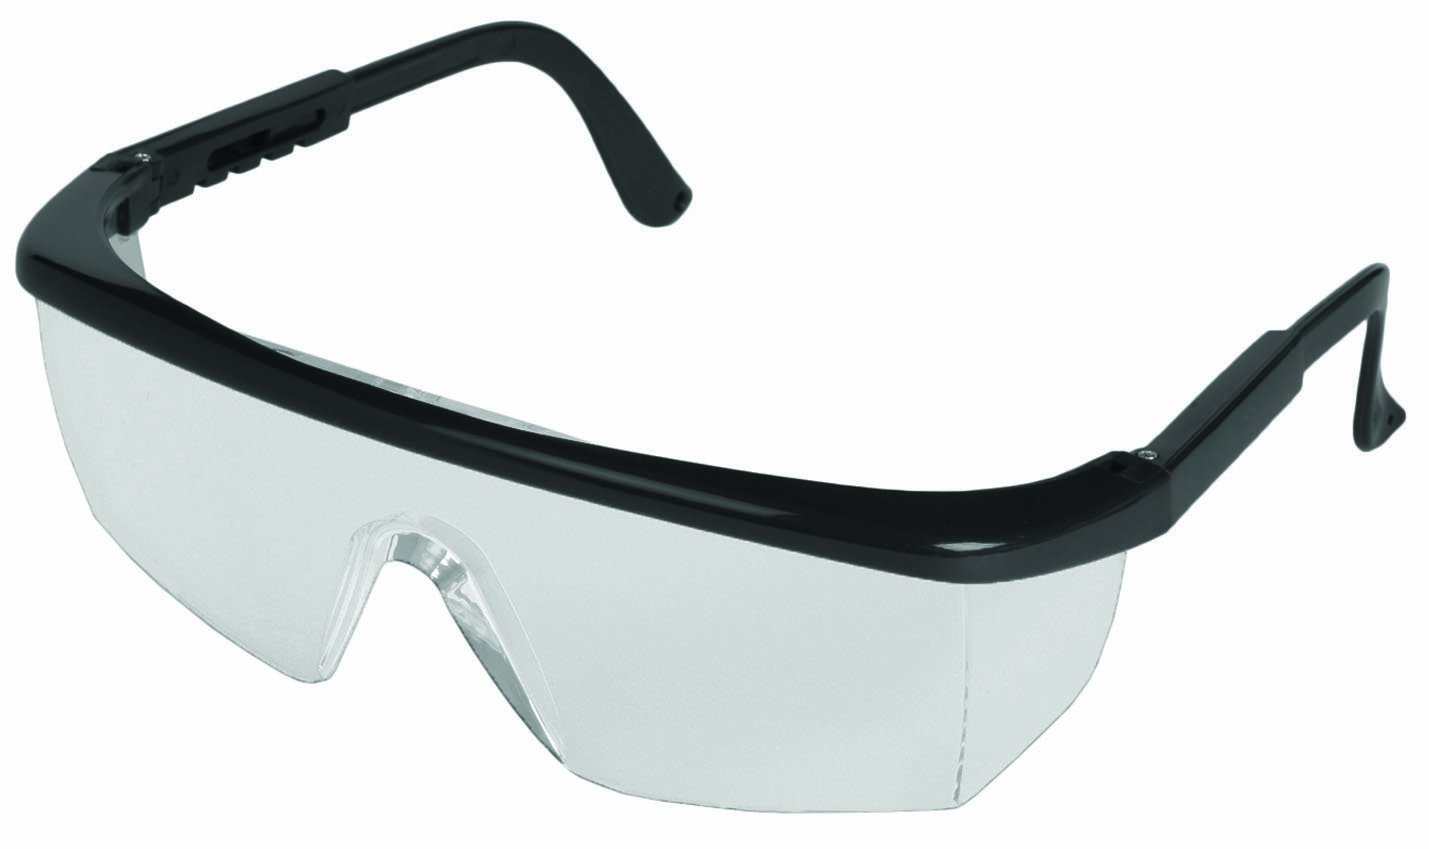 ERB 15200 Sting-Rays Safety Glasses, Black Frame with Clear Lens by ERB  B0056B26RS